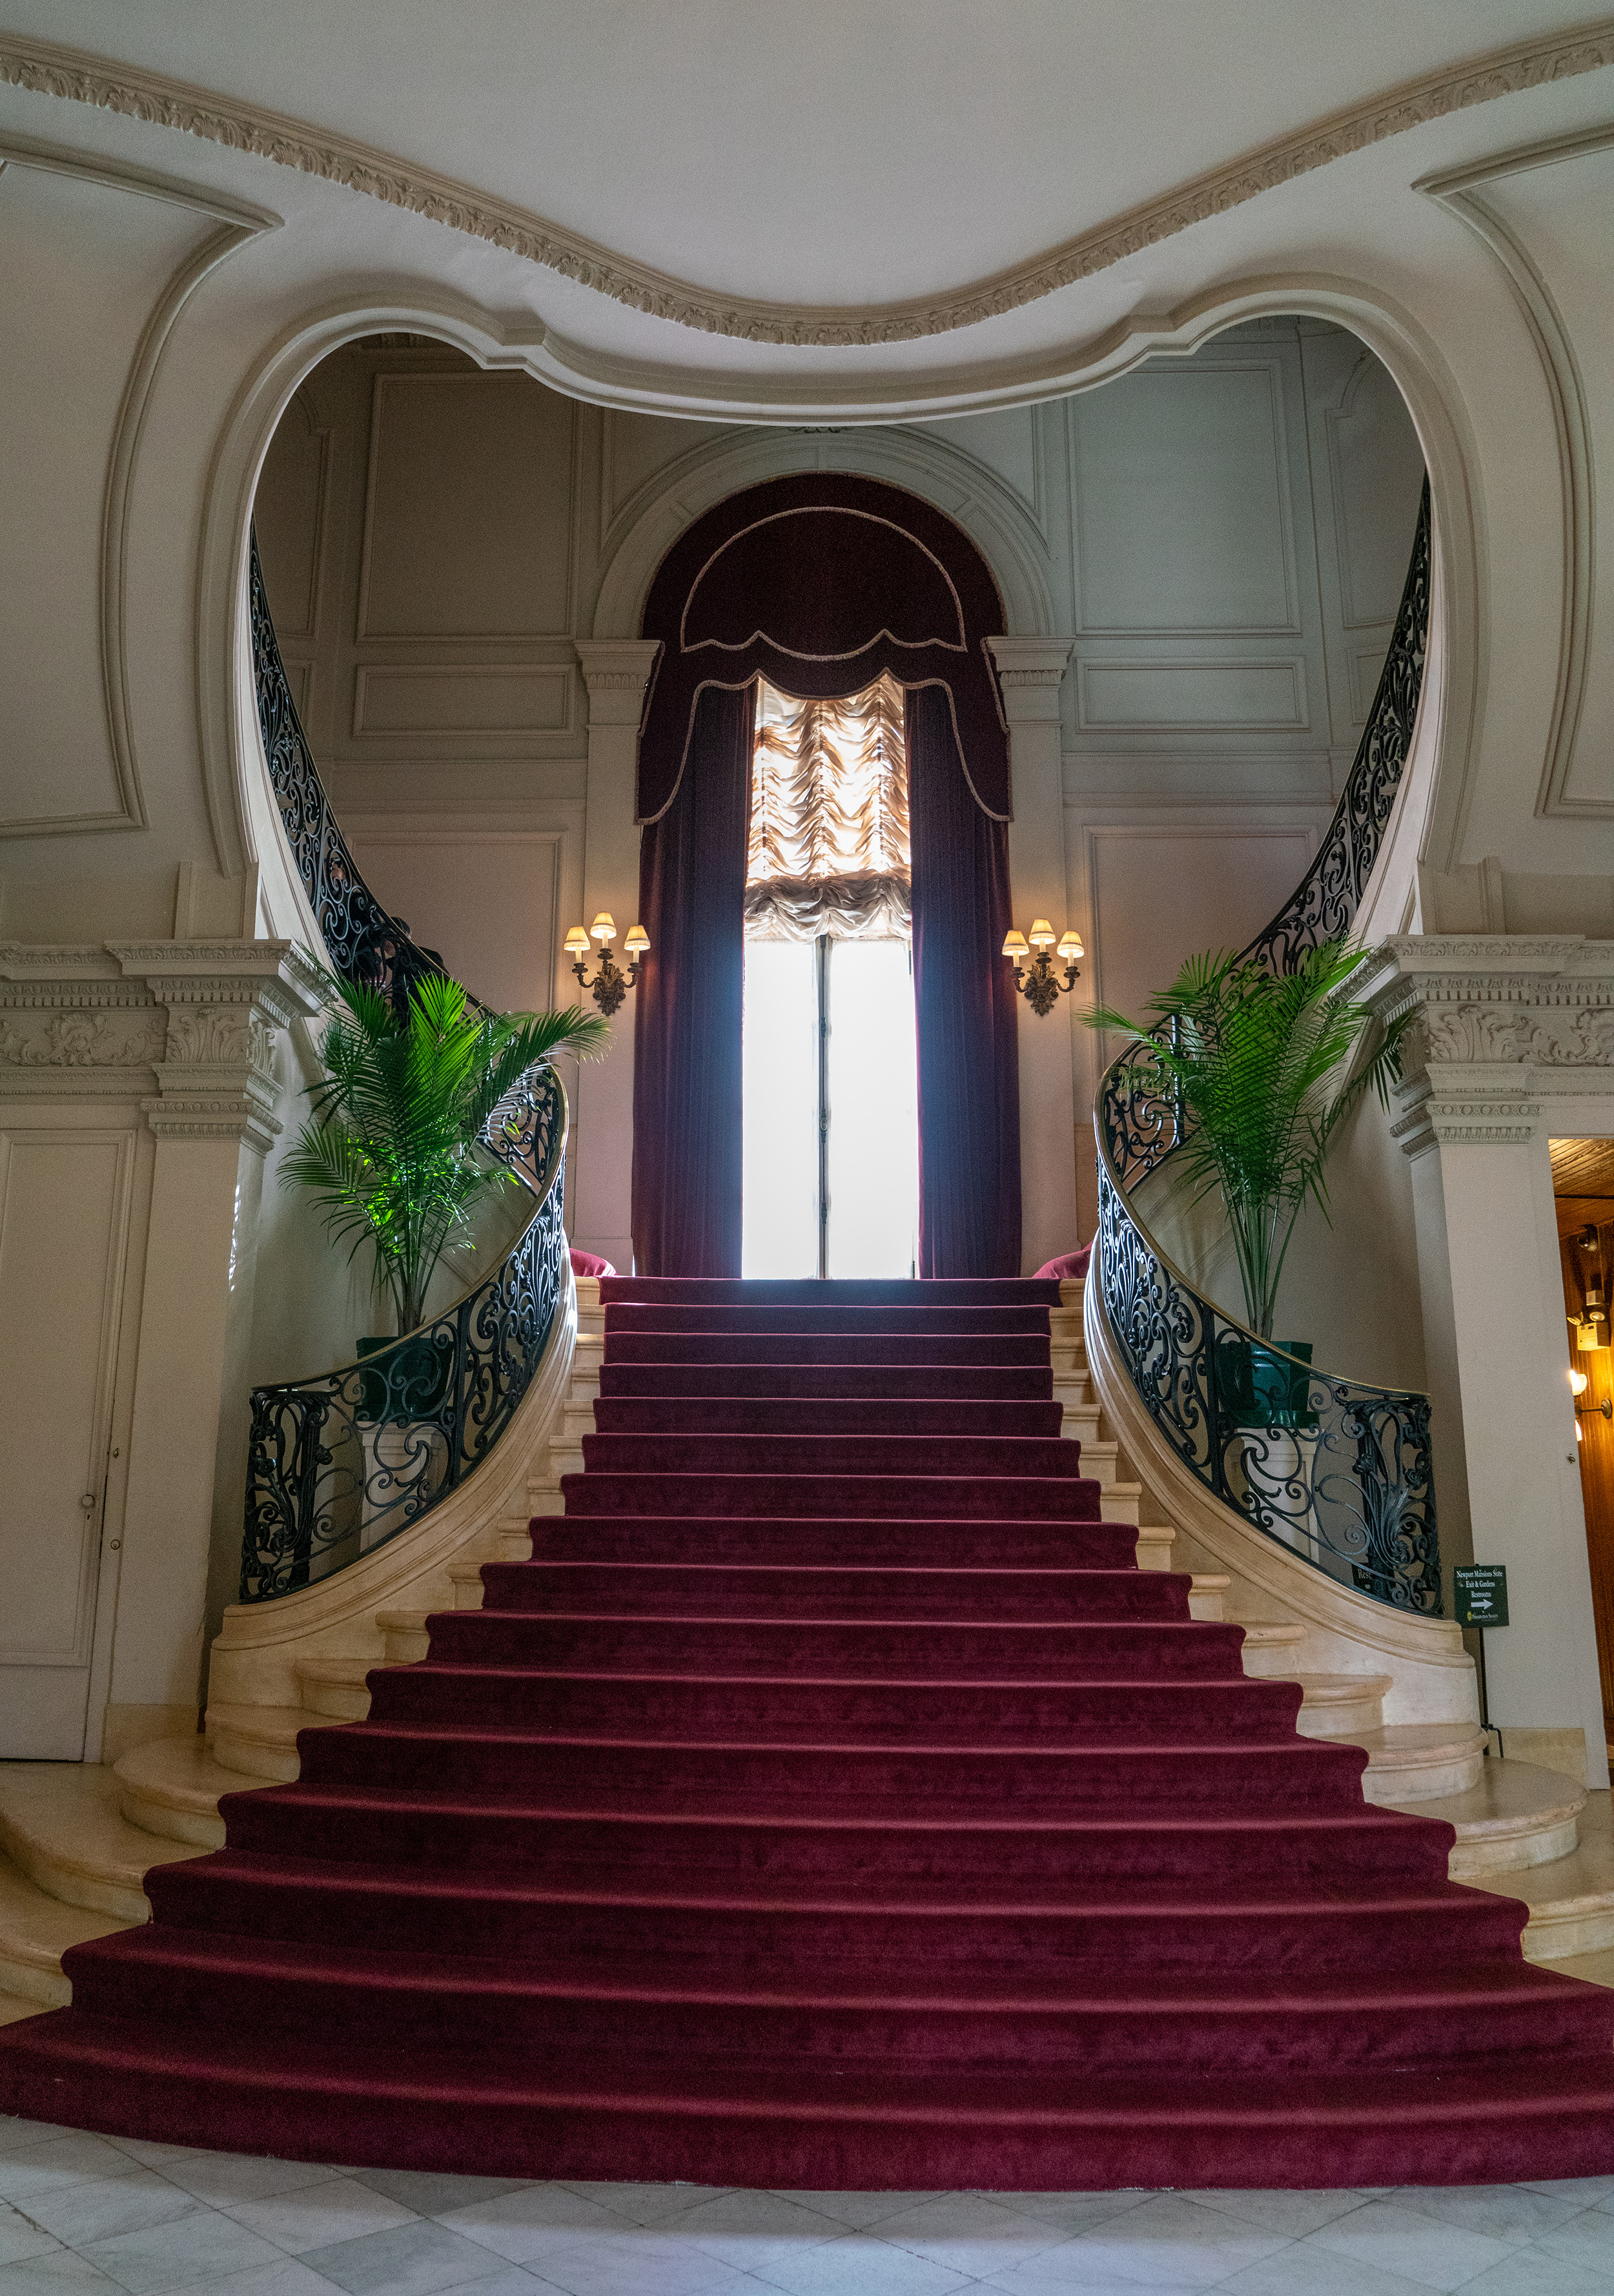 #rosecliff, #historic, #architecture, #1902, #newport, #mansions, #newportmansions, #greatgatsby, #gatsby #makeanentrance